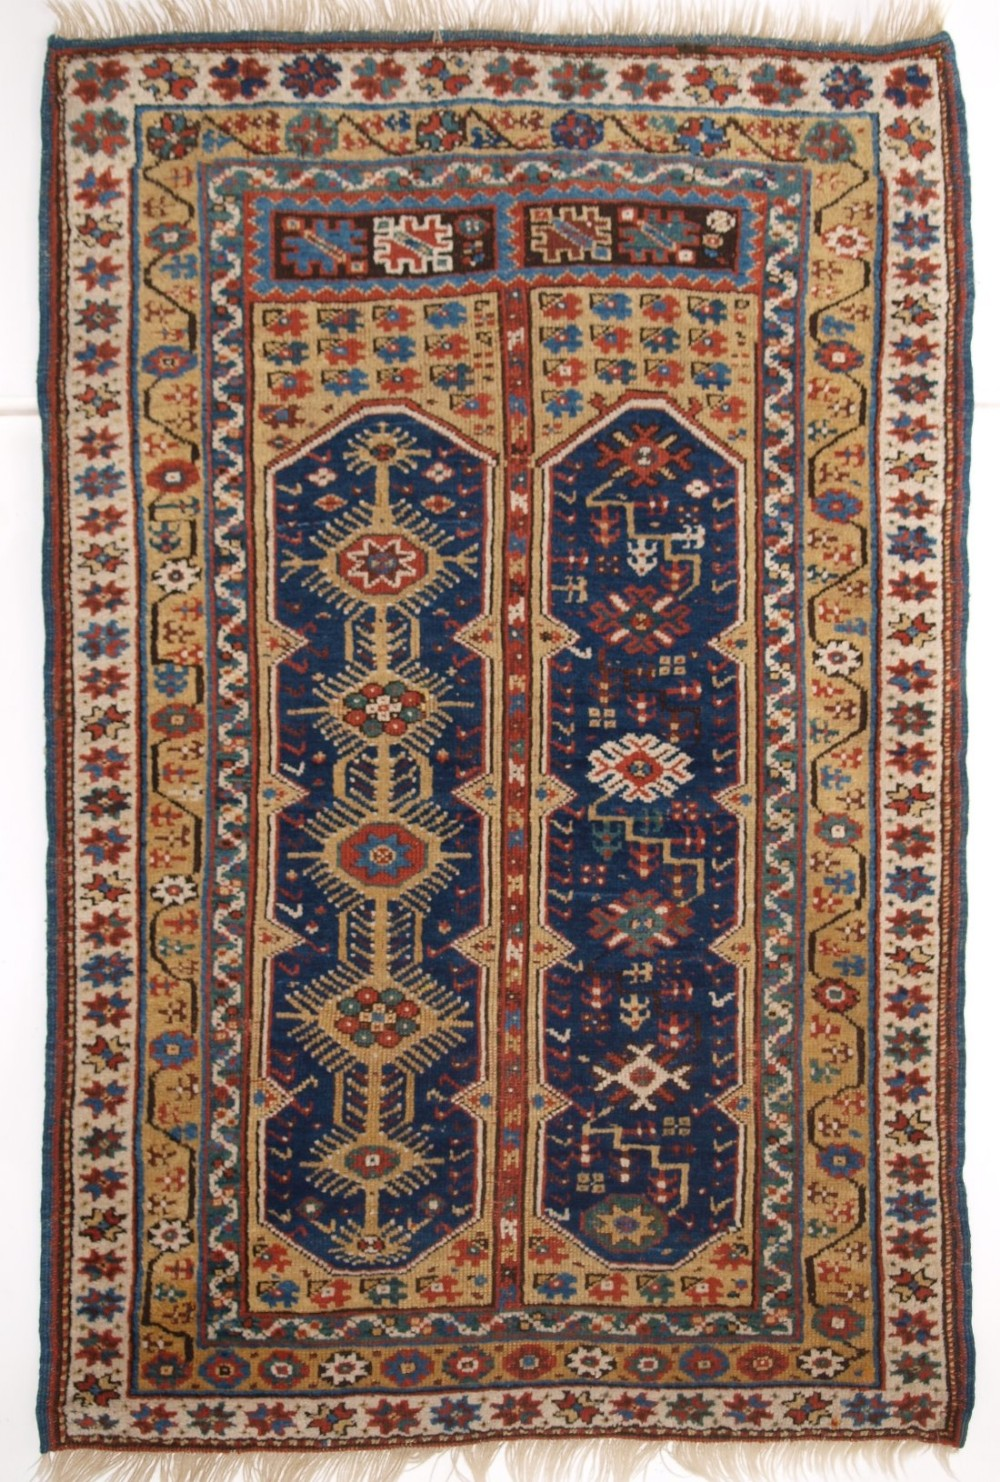 antique turkish megri prayer rug rare yellow ground mid 19th century